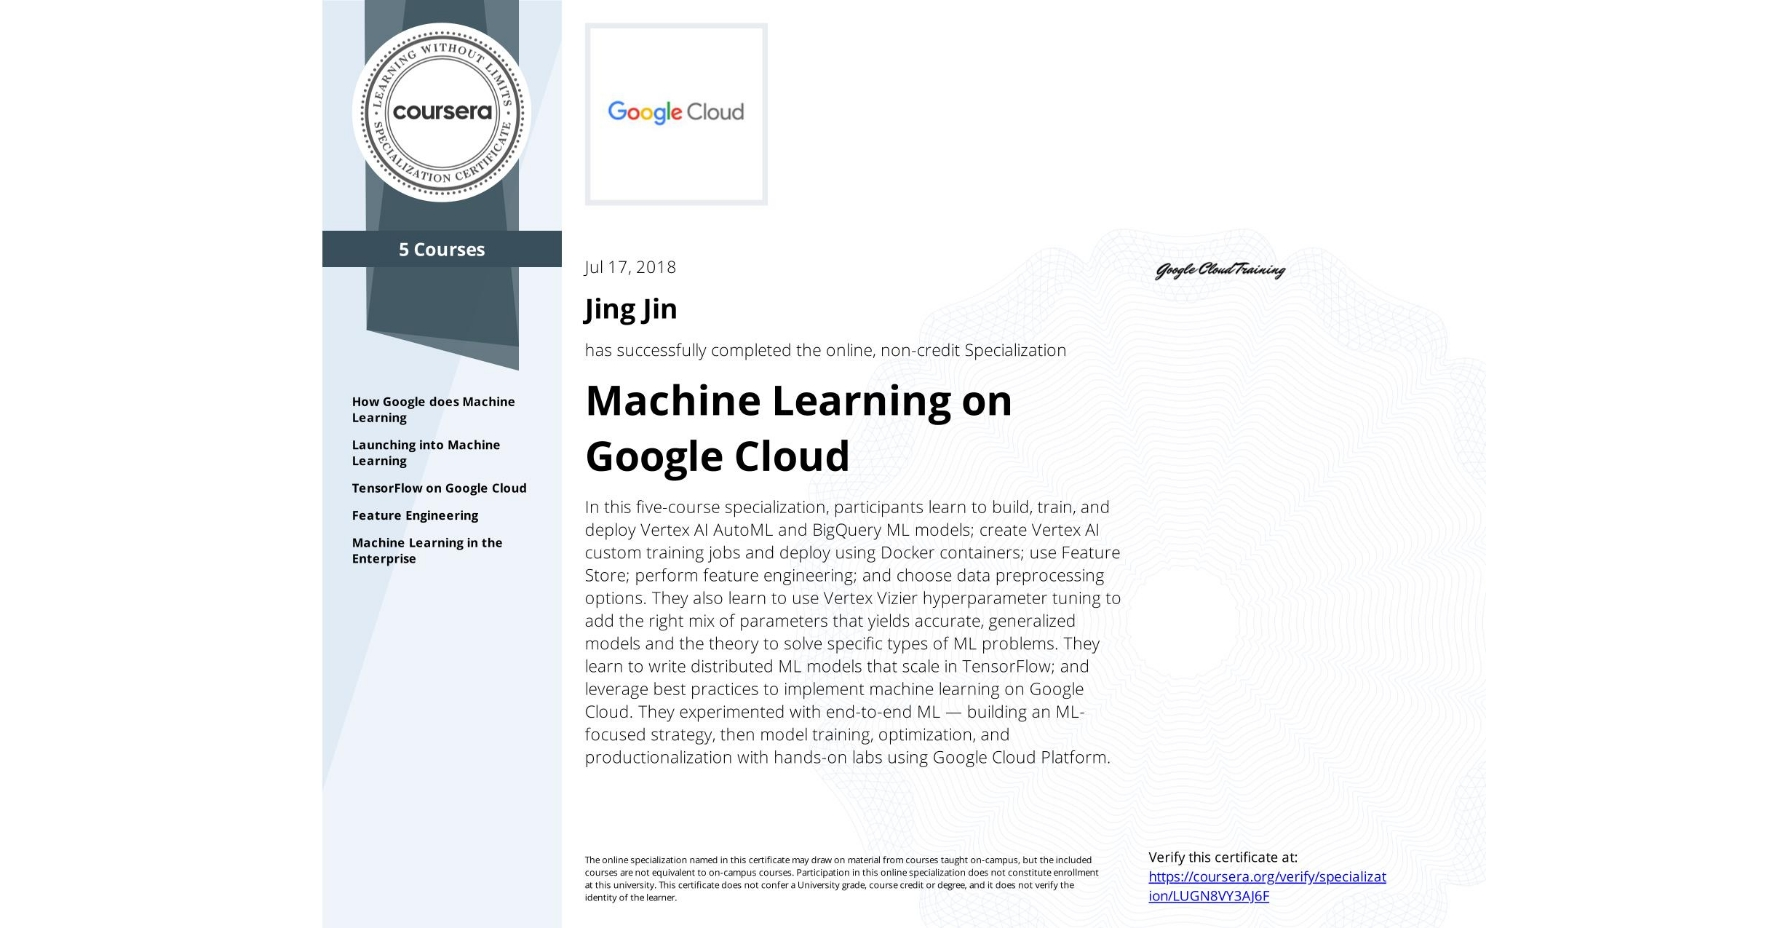 View certificate for Jing Jin, Machine Learning with TensorFlow on Google Cloud Platform, offered through Coursera. This five-course online specialization teaches course participants how to write distributed machine learning models that scale in Tensorflow, scale out the training of those models. and offer high-performance predictions. Also featured is the conversion of raw data to features in a way that allows ML to learn important characteristics from the data and bring human insight to bear on the problem. It also teaches how to incorporate the right mix of parameters that yields accurate, generalized models and knowledge of the theory to solve specific types of ML problems. Course participants experimented with end-to-end ML, starting from building an ML-focused strategy and progressing into model training, optimization, and productionalization with hands-on labs using Google Cloud Platform.